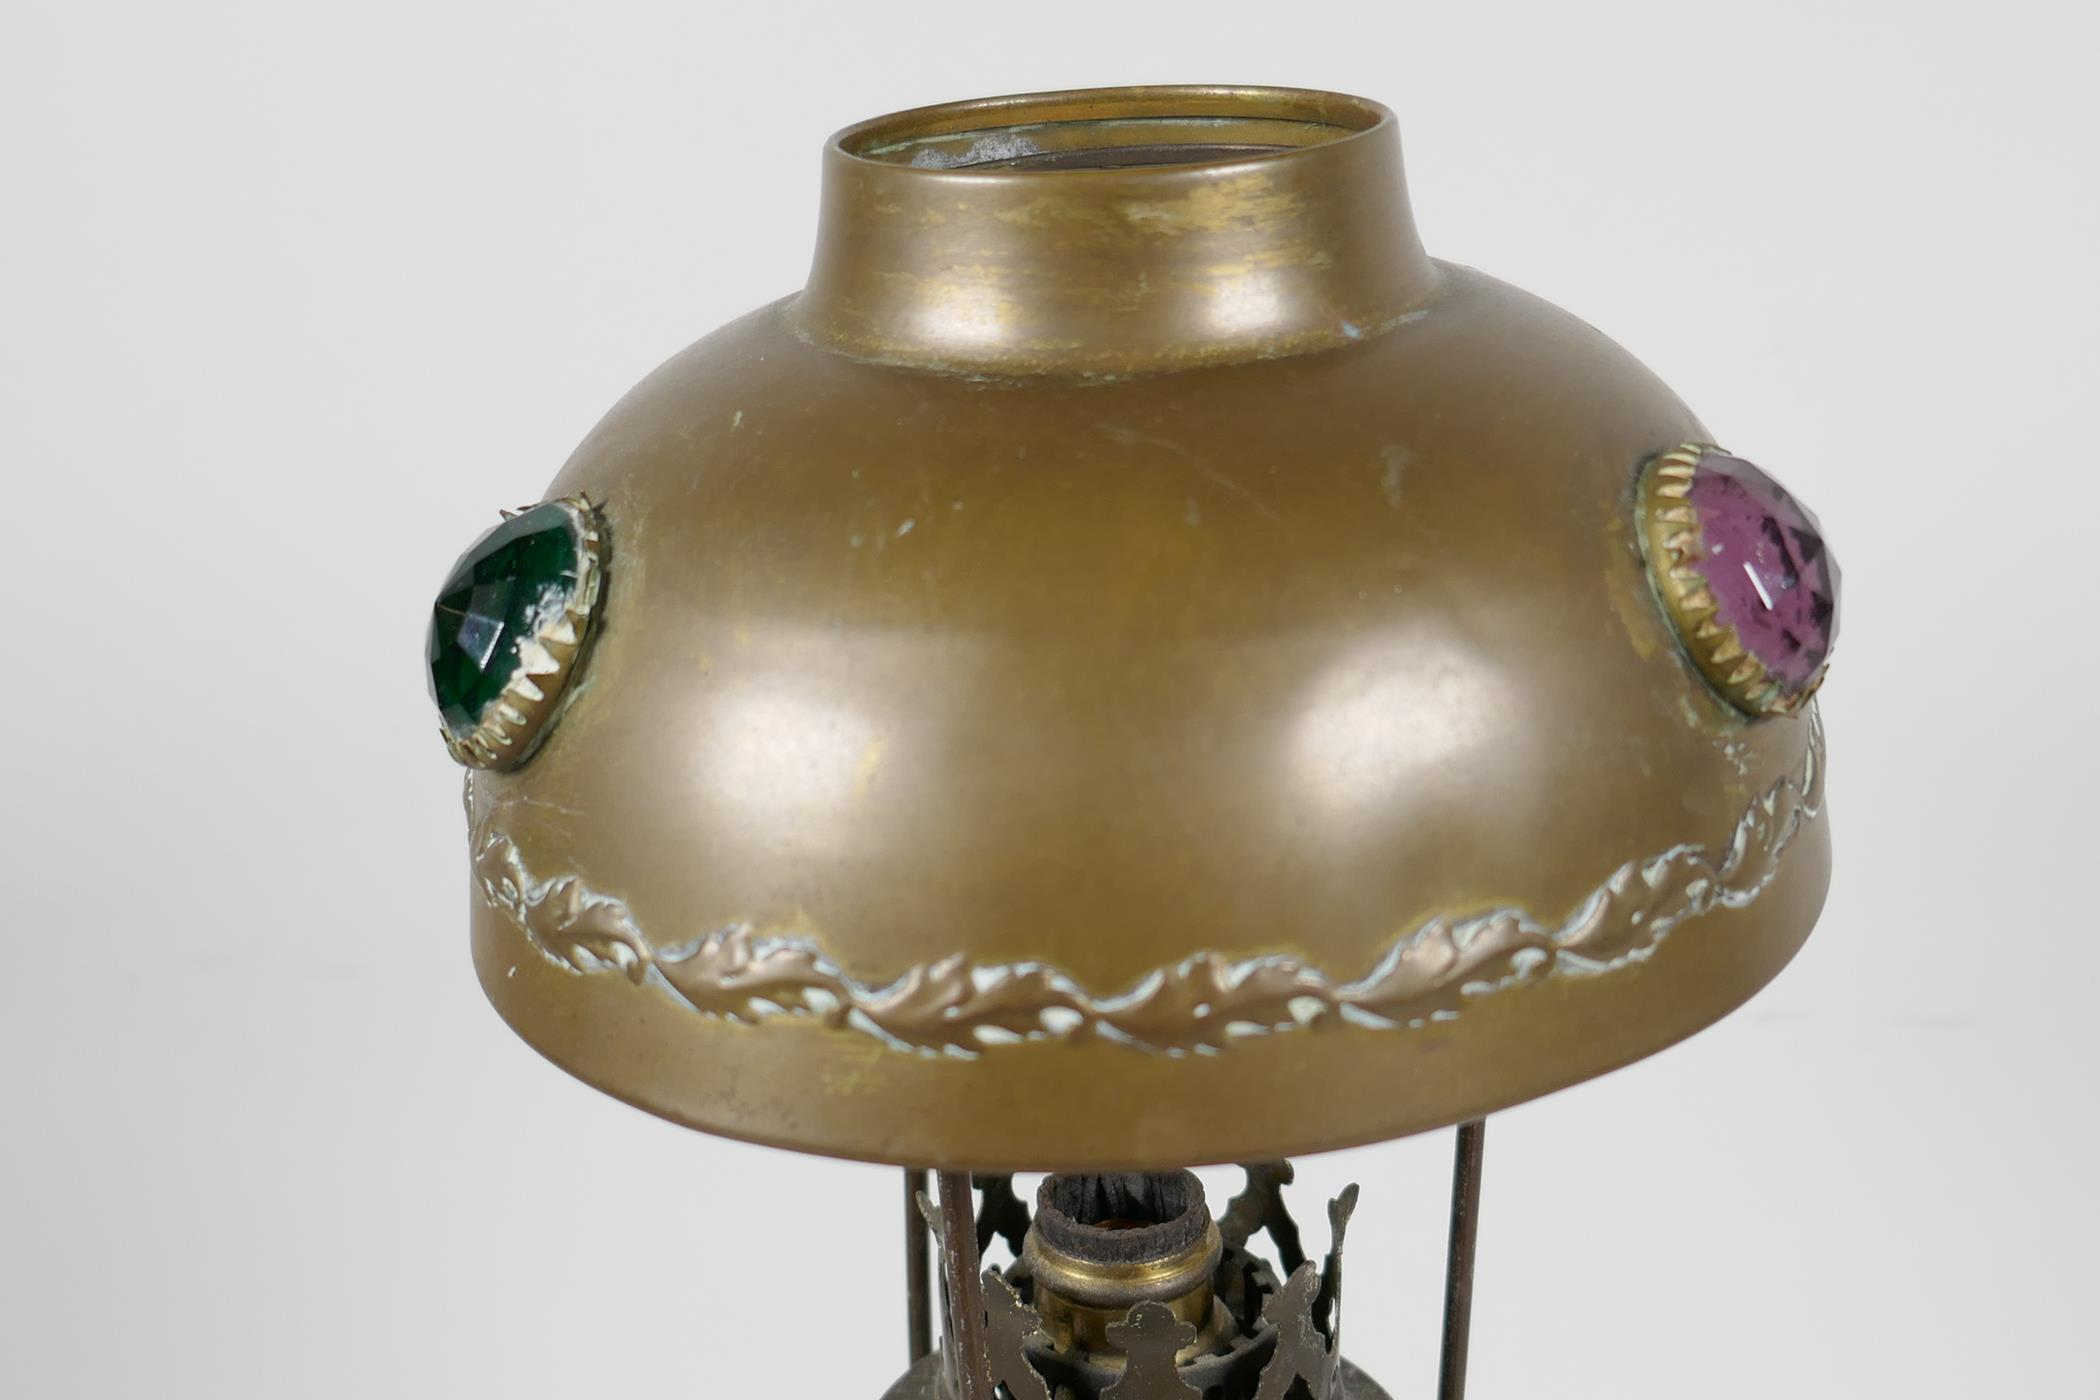 """A brass table lamp with brass shade set with coloured stones, 13"""" high - Image 3 of 3"""